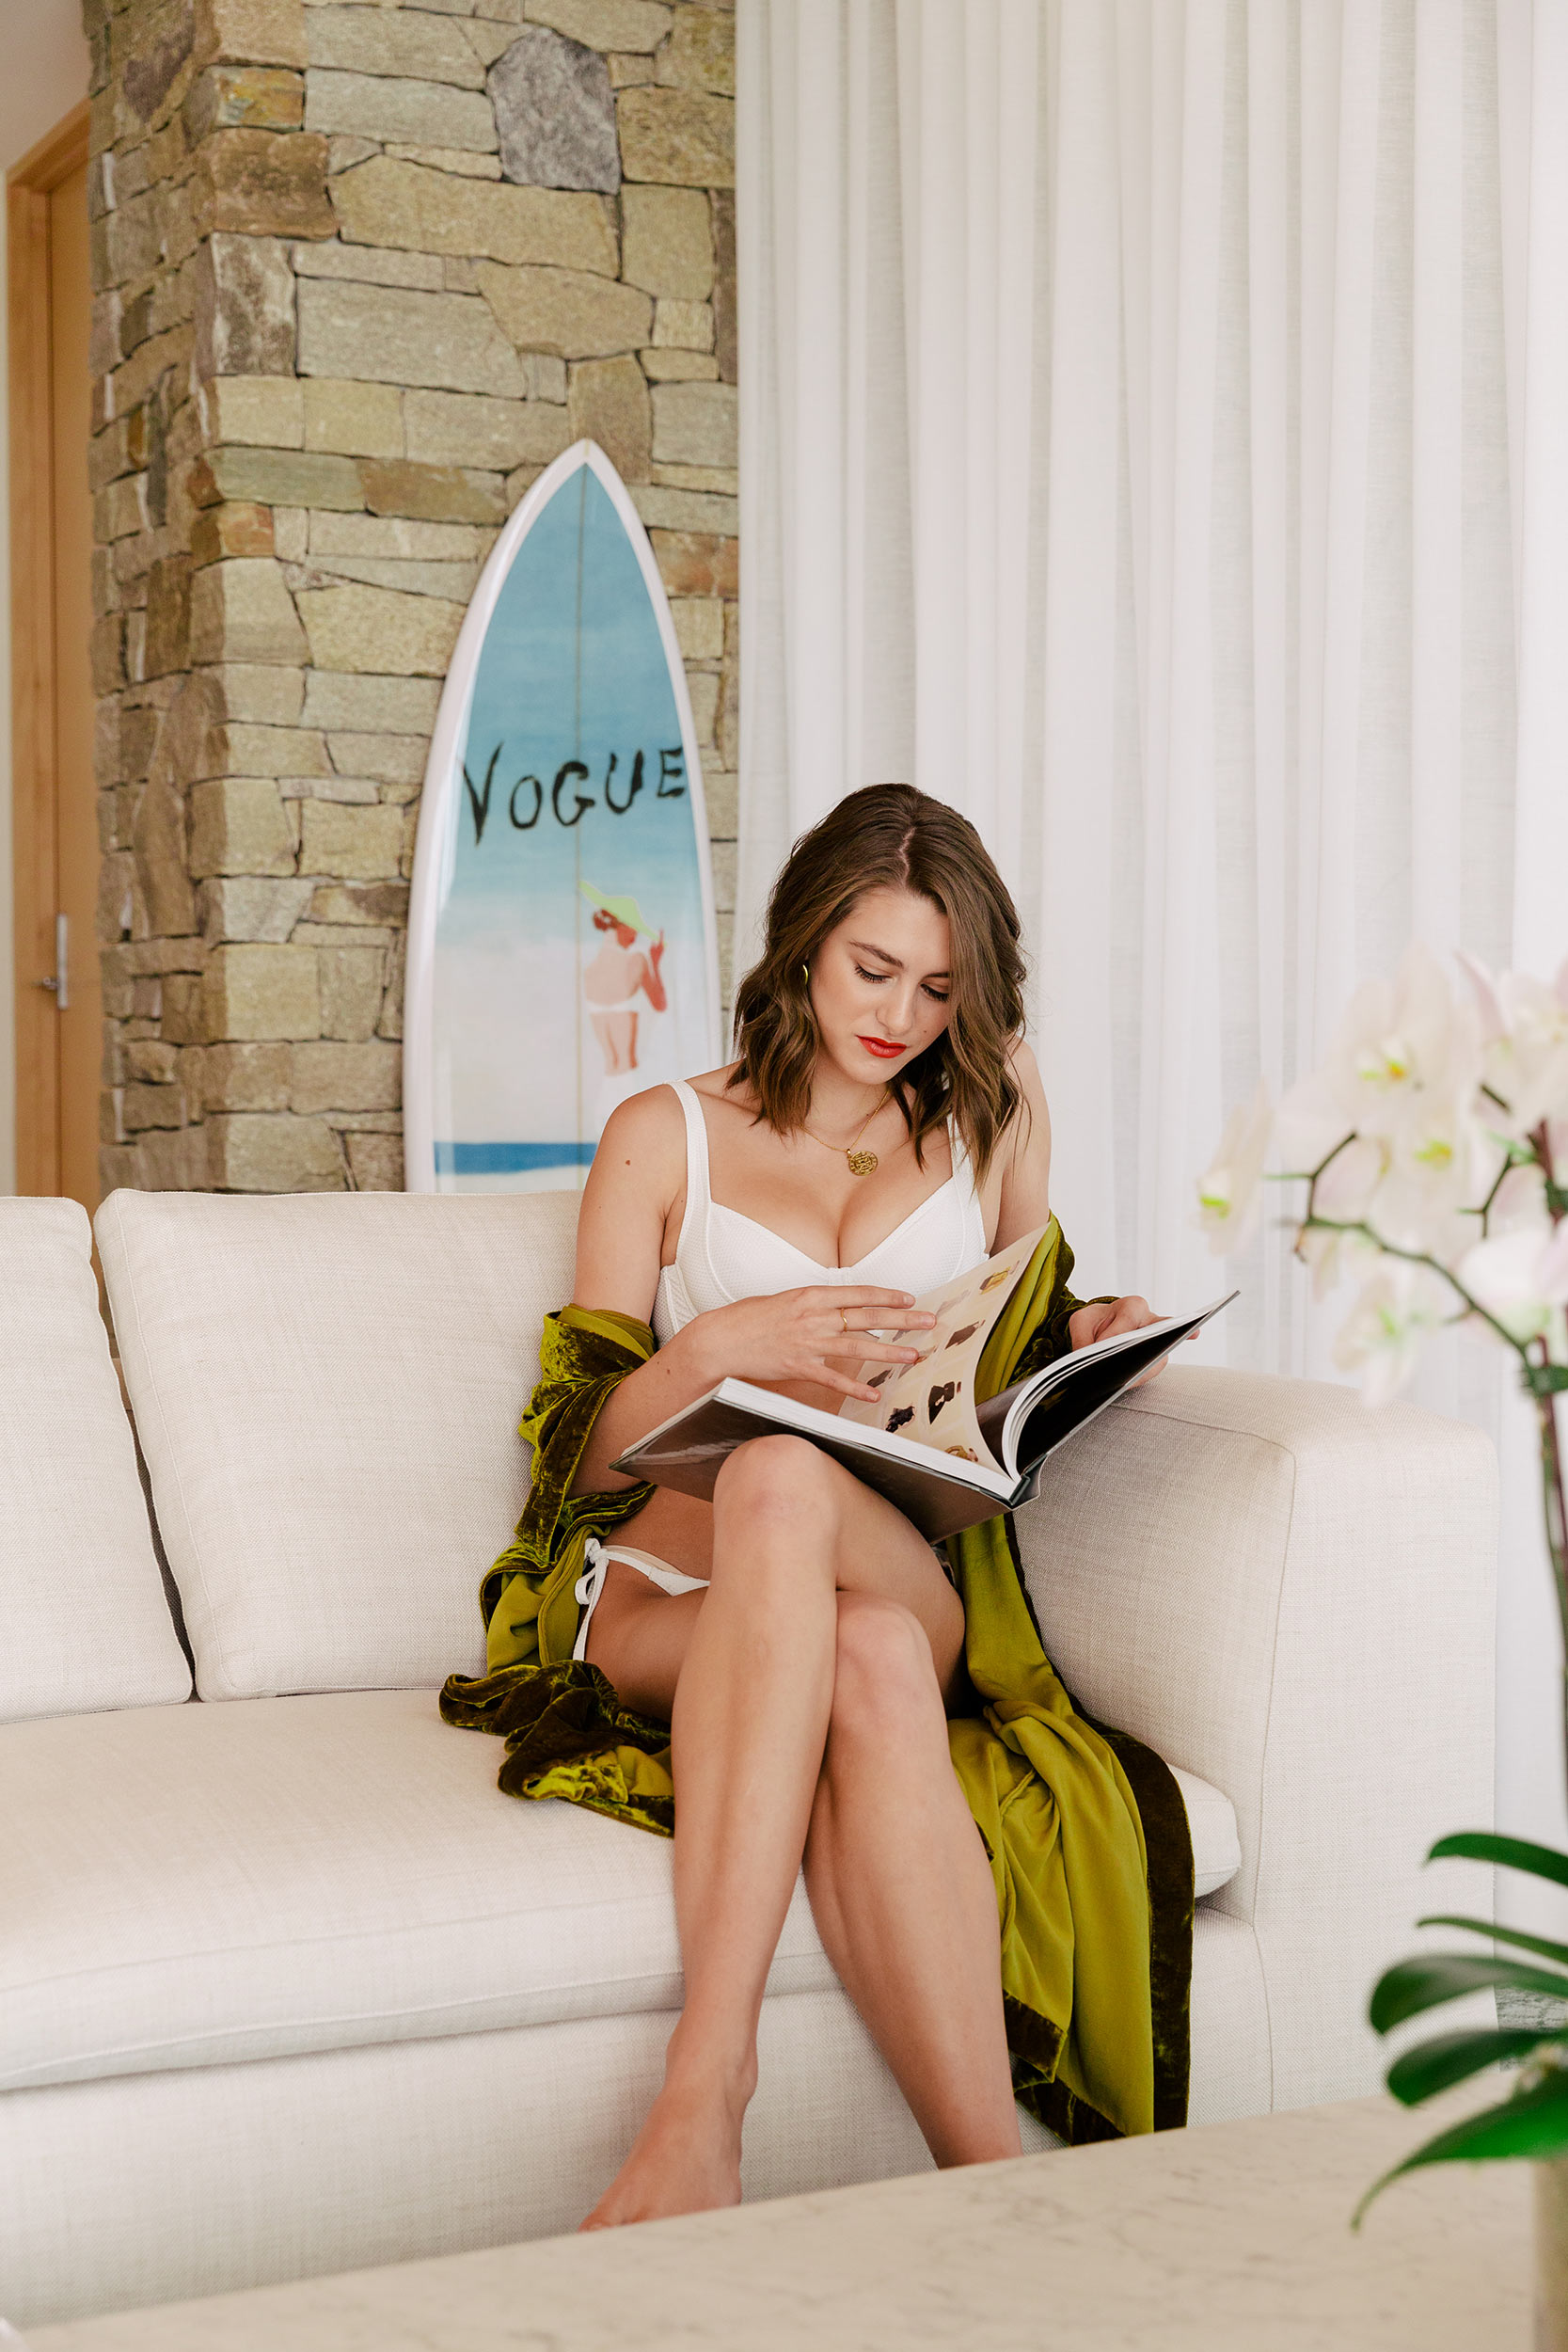 nusa-indah-surfboards-vogue-collection-eduardo-benito-4.jpg